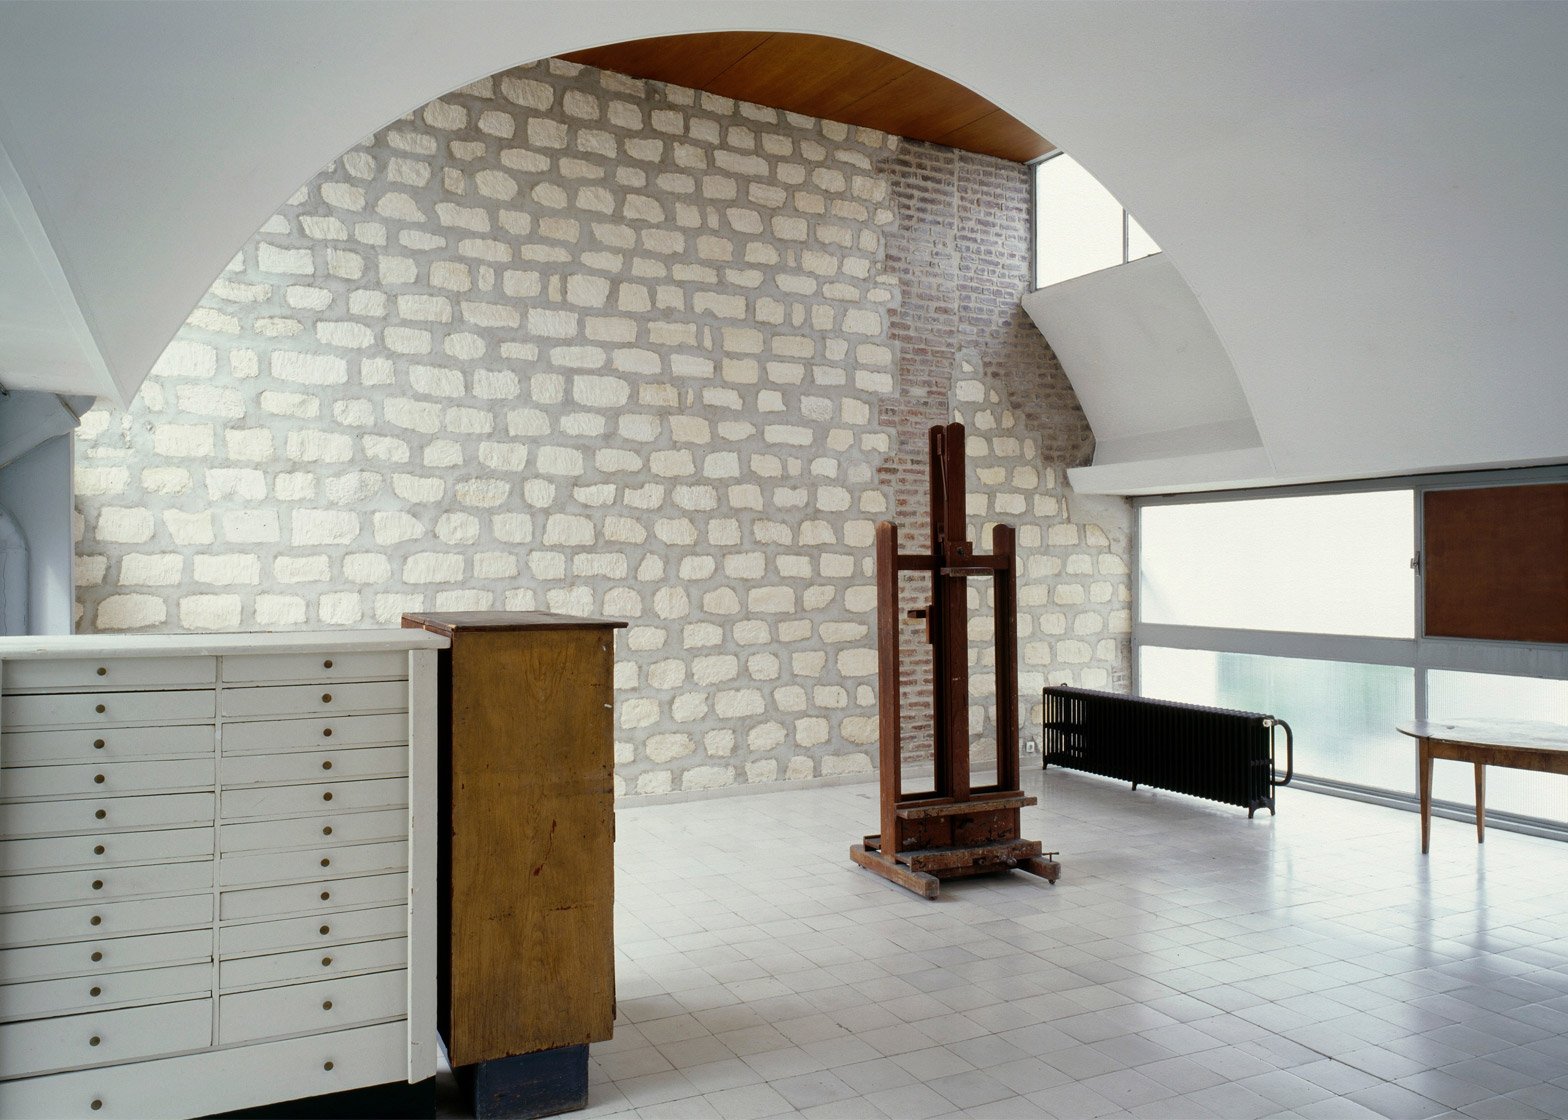 Immeuble Molitor, by Le Corbusier